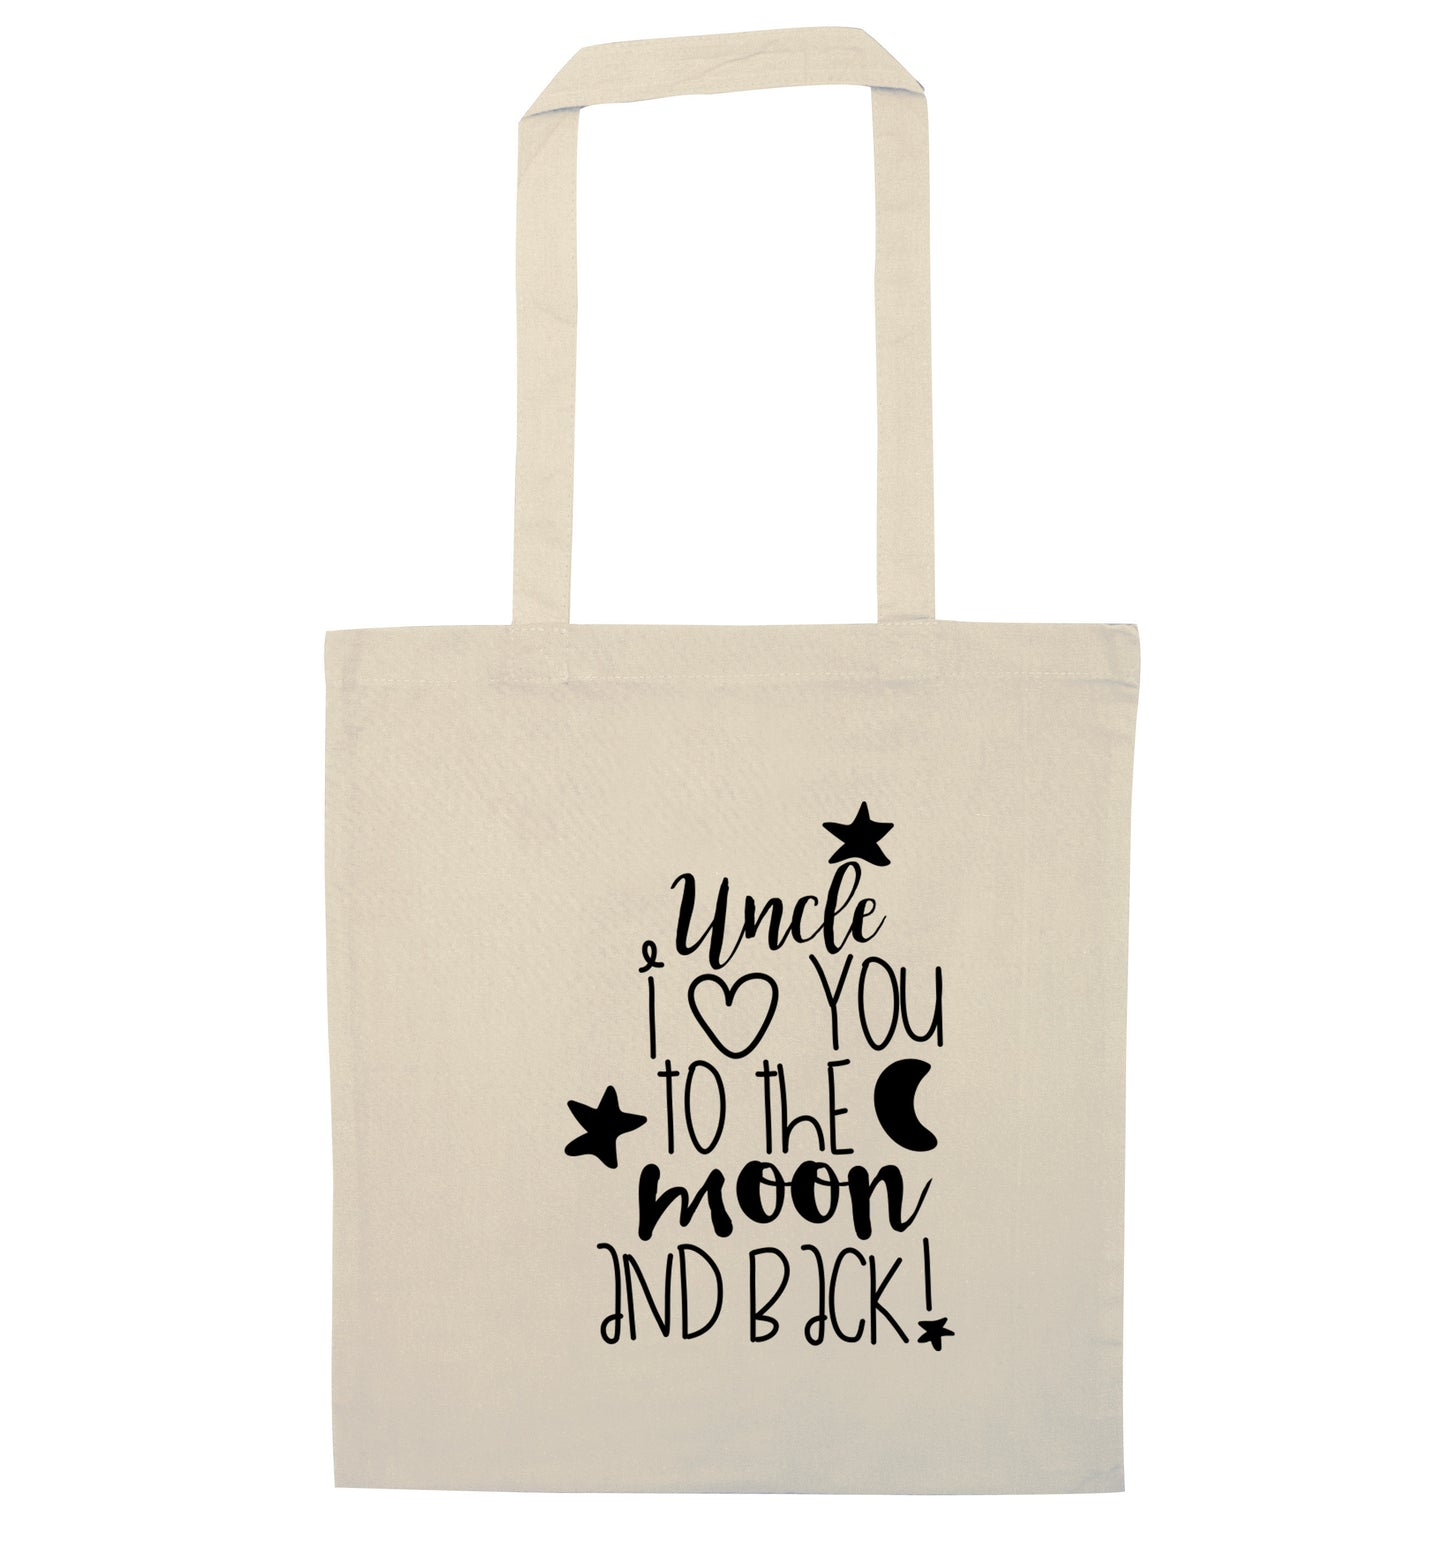 Uncle I love you to the moon and back natural tote bag